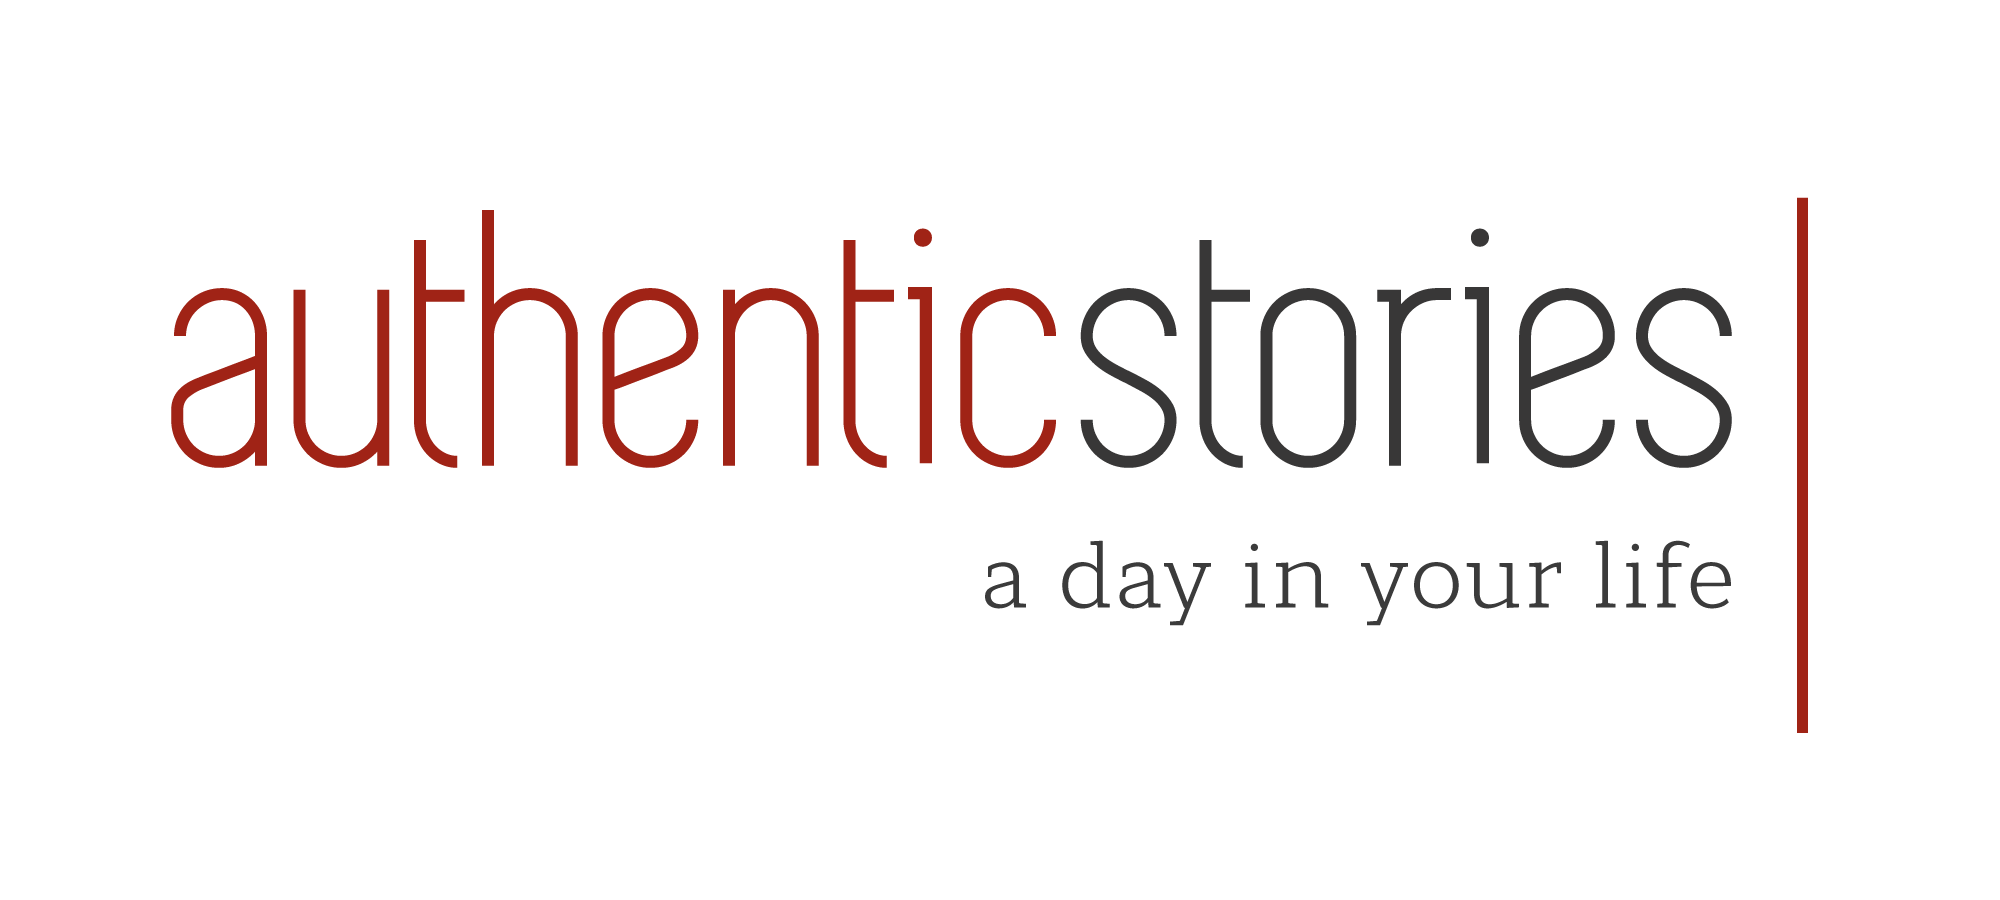 Authentic-Stories-Logo-